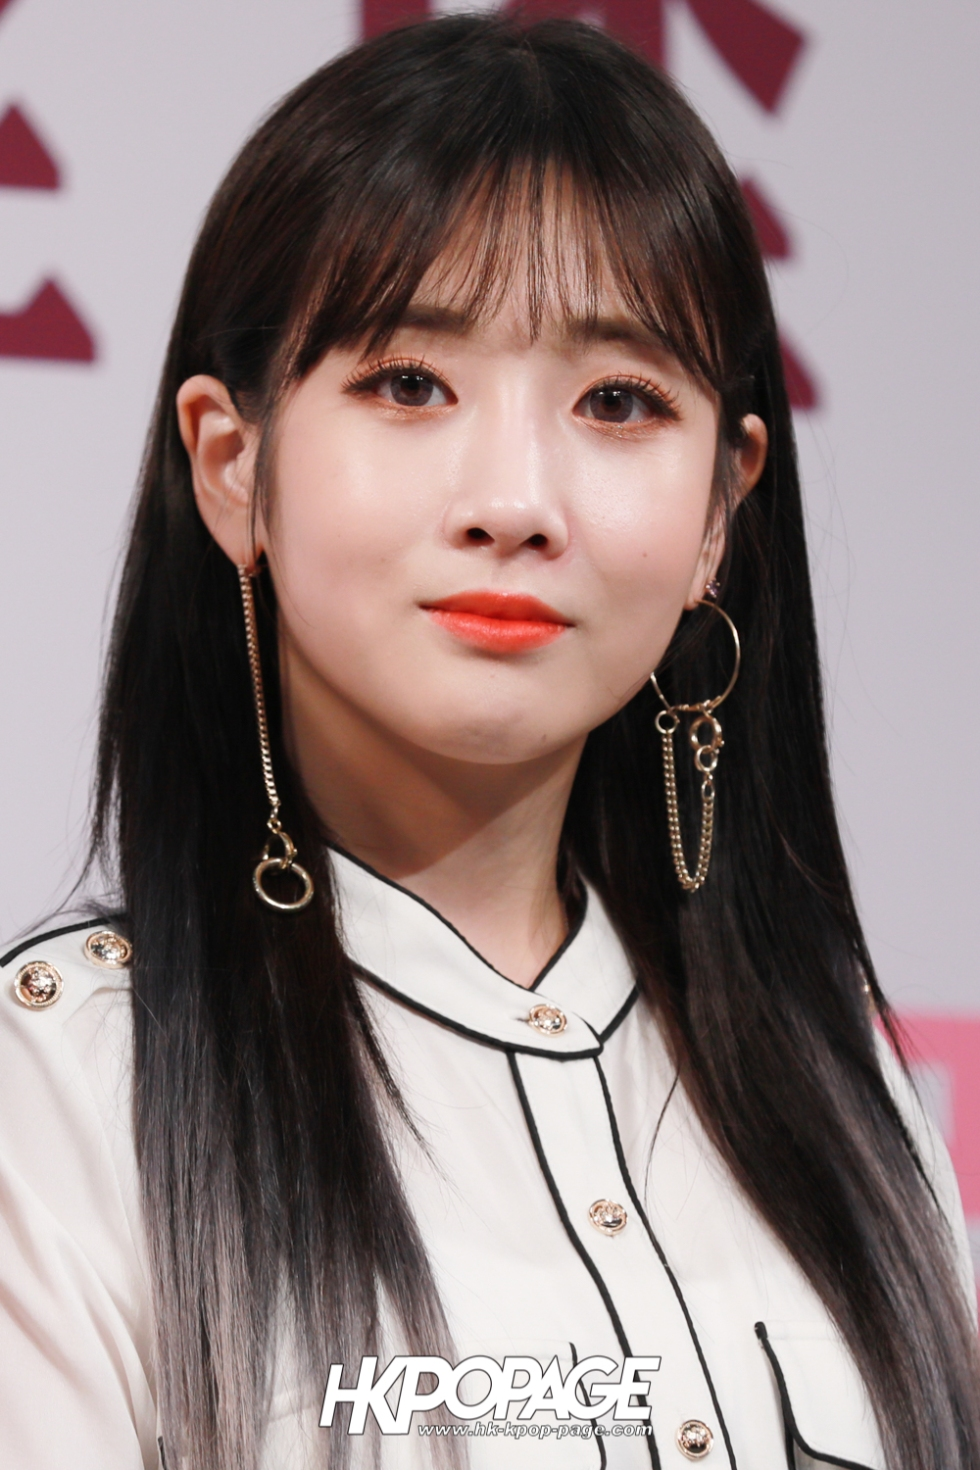 [HK.KPOP.PAGE] 180615_Windsor x 2018 ASIA FAN MEETING LOVELYZ IN HK_18